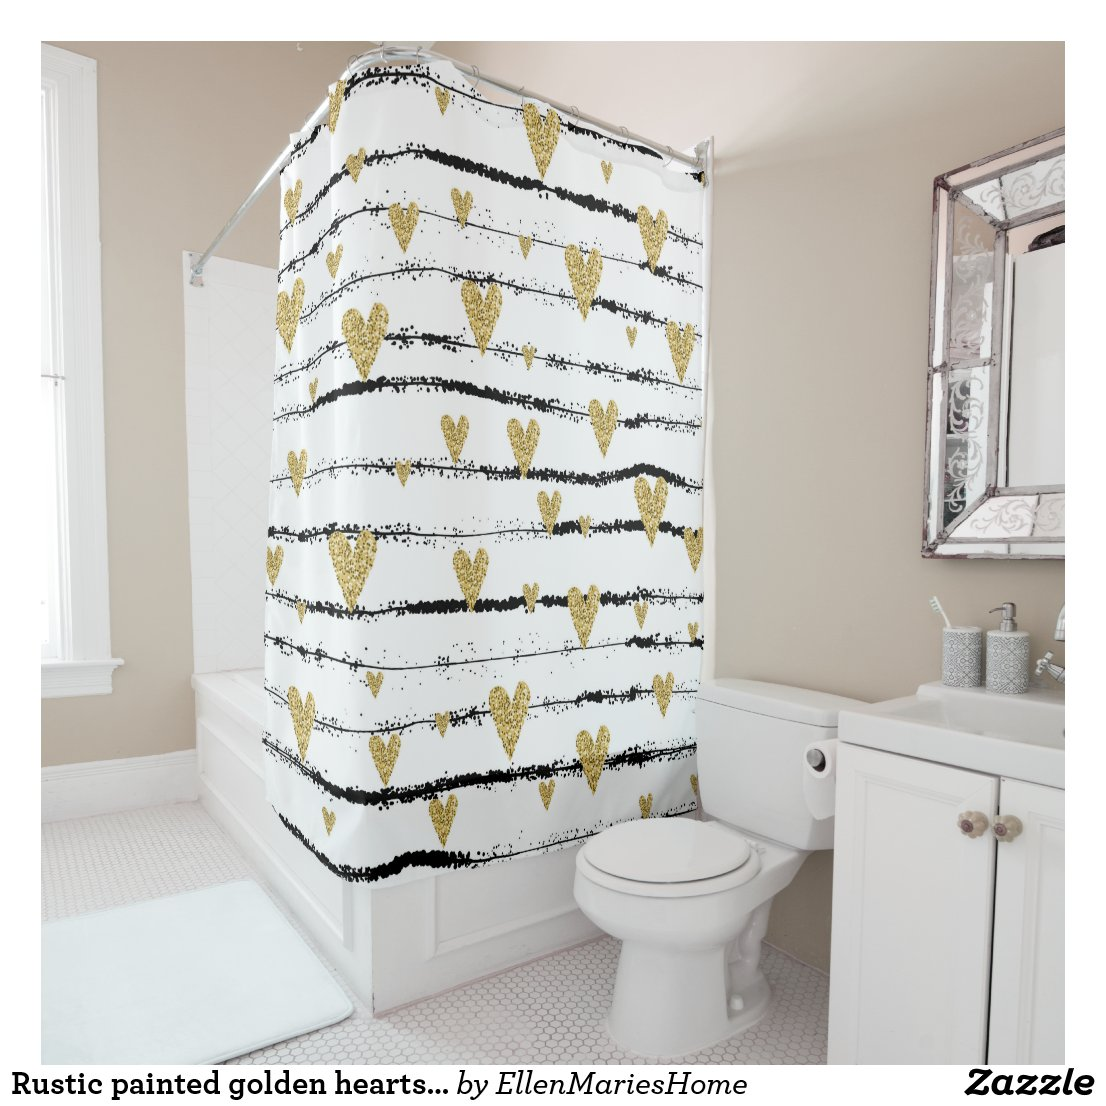 Rustic painted golden hearts on black stripes shower curtain